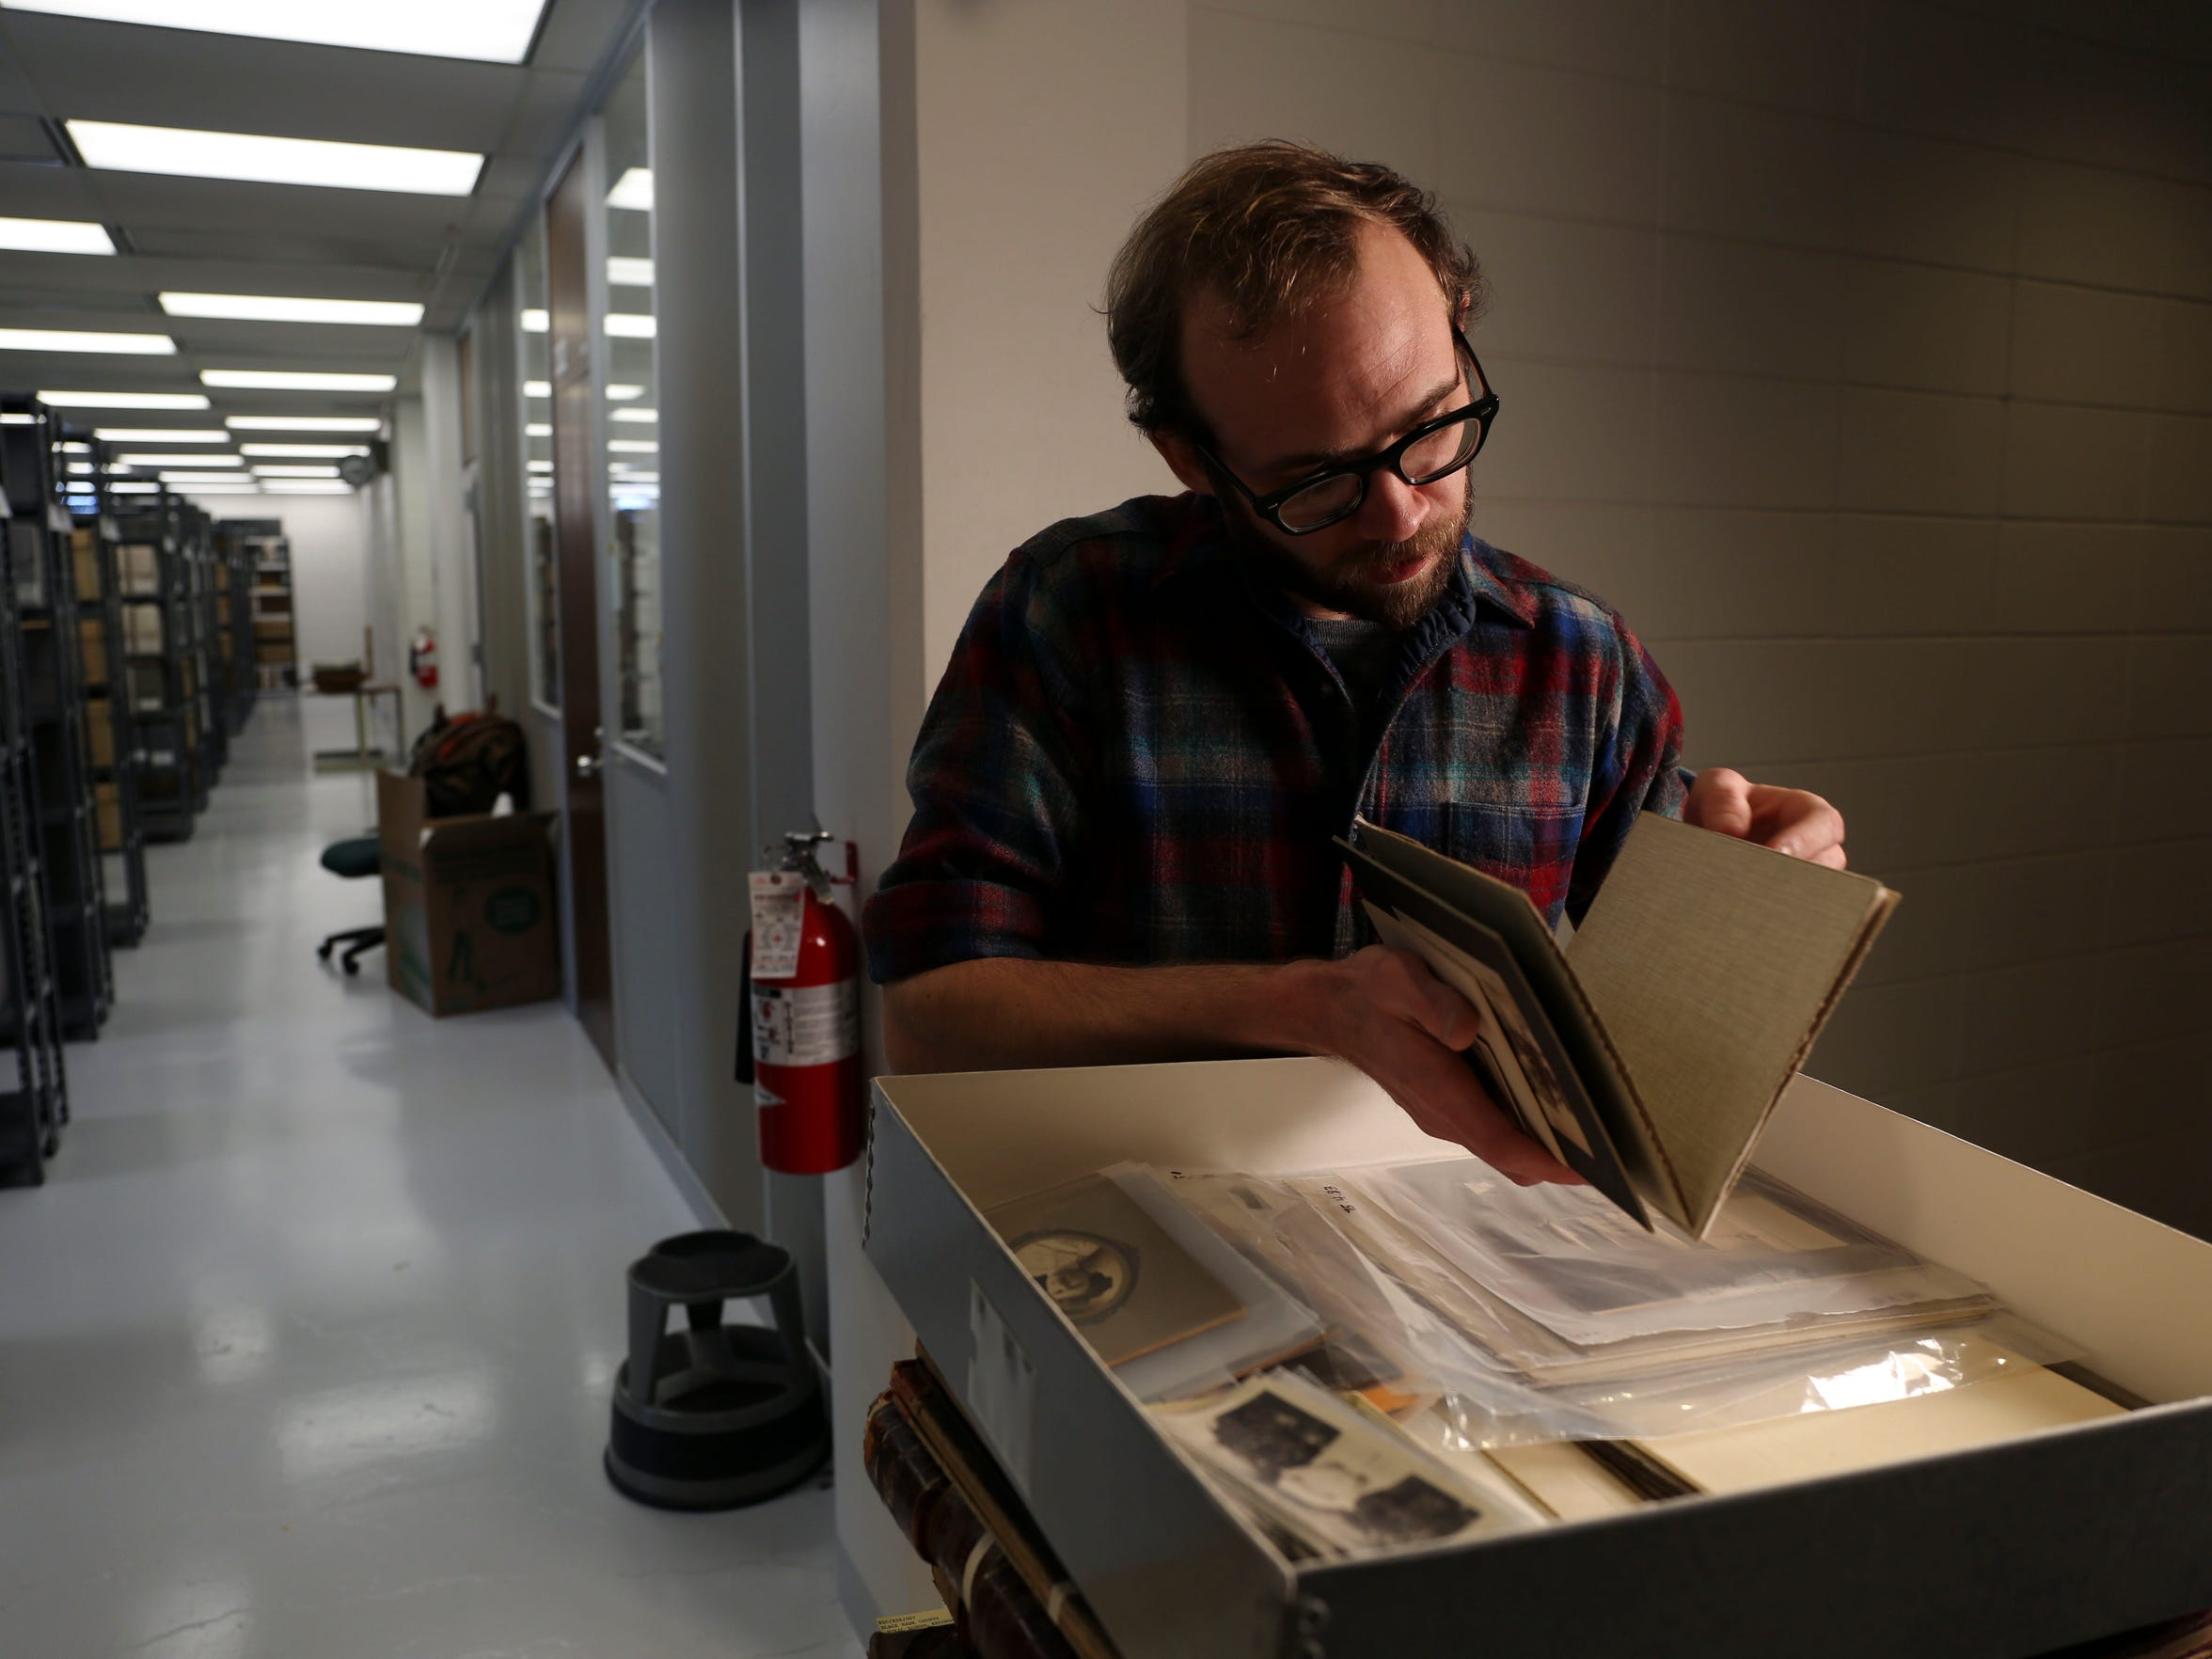 Dustin Wistman, project archivist for the Rural Schools Collection sorts through materials on Tuesday, Jan. 13, 2015, at the Rod Library on the campus of the University of Northern Iowa in Cedar Falls, Iowa.